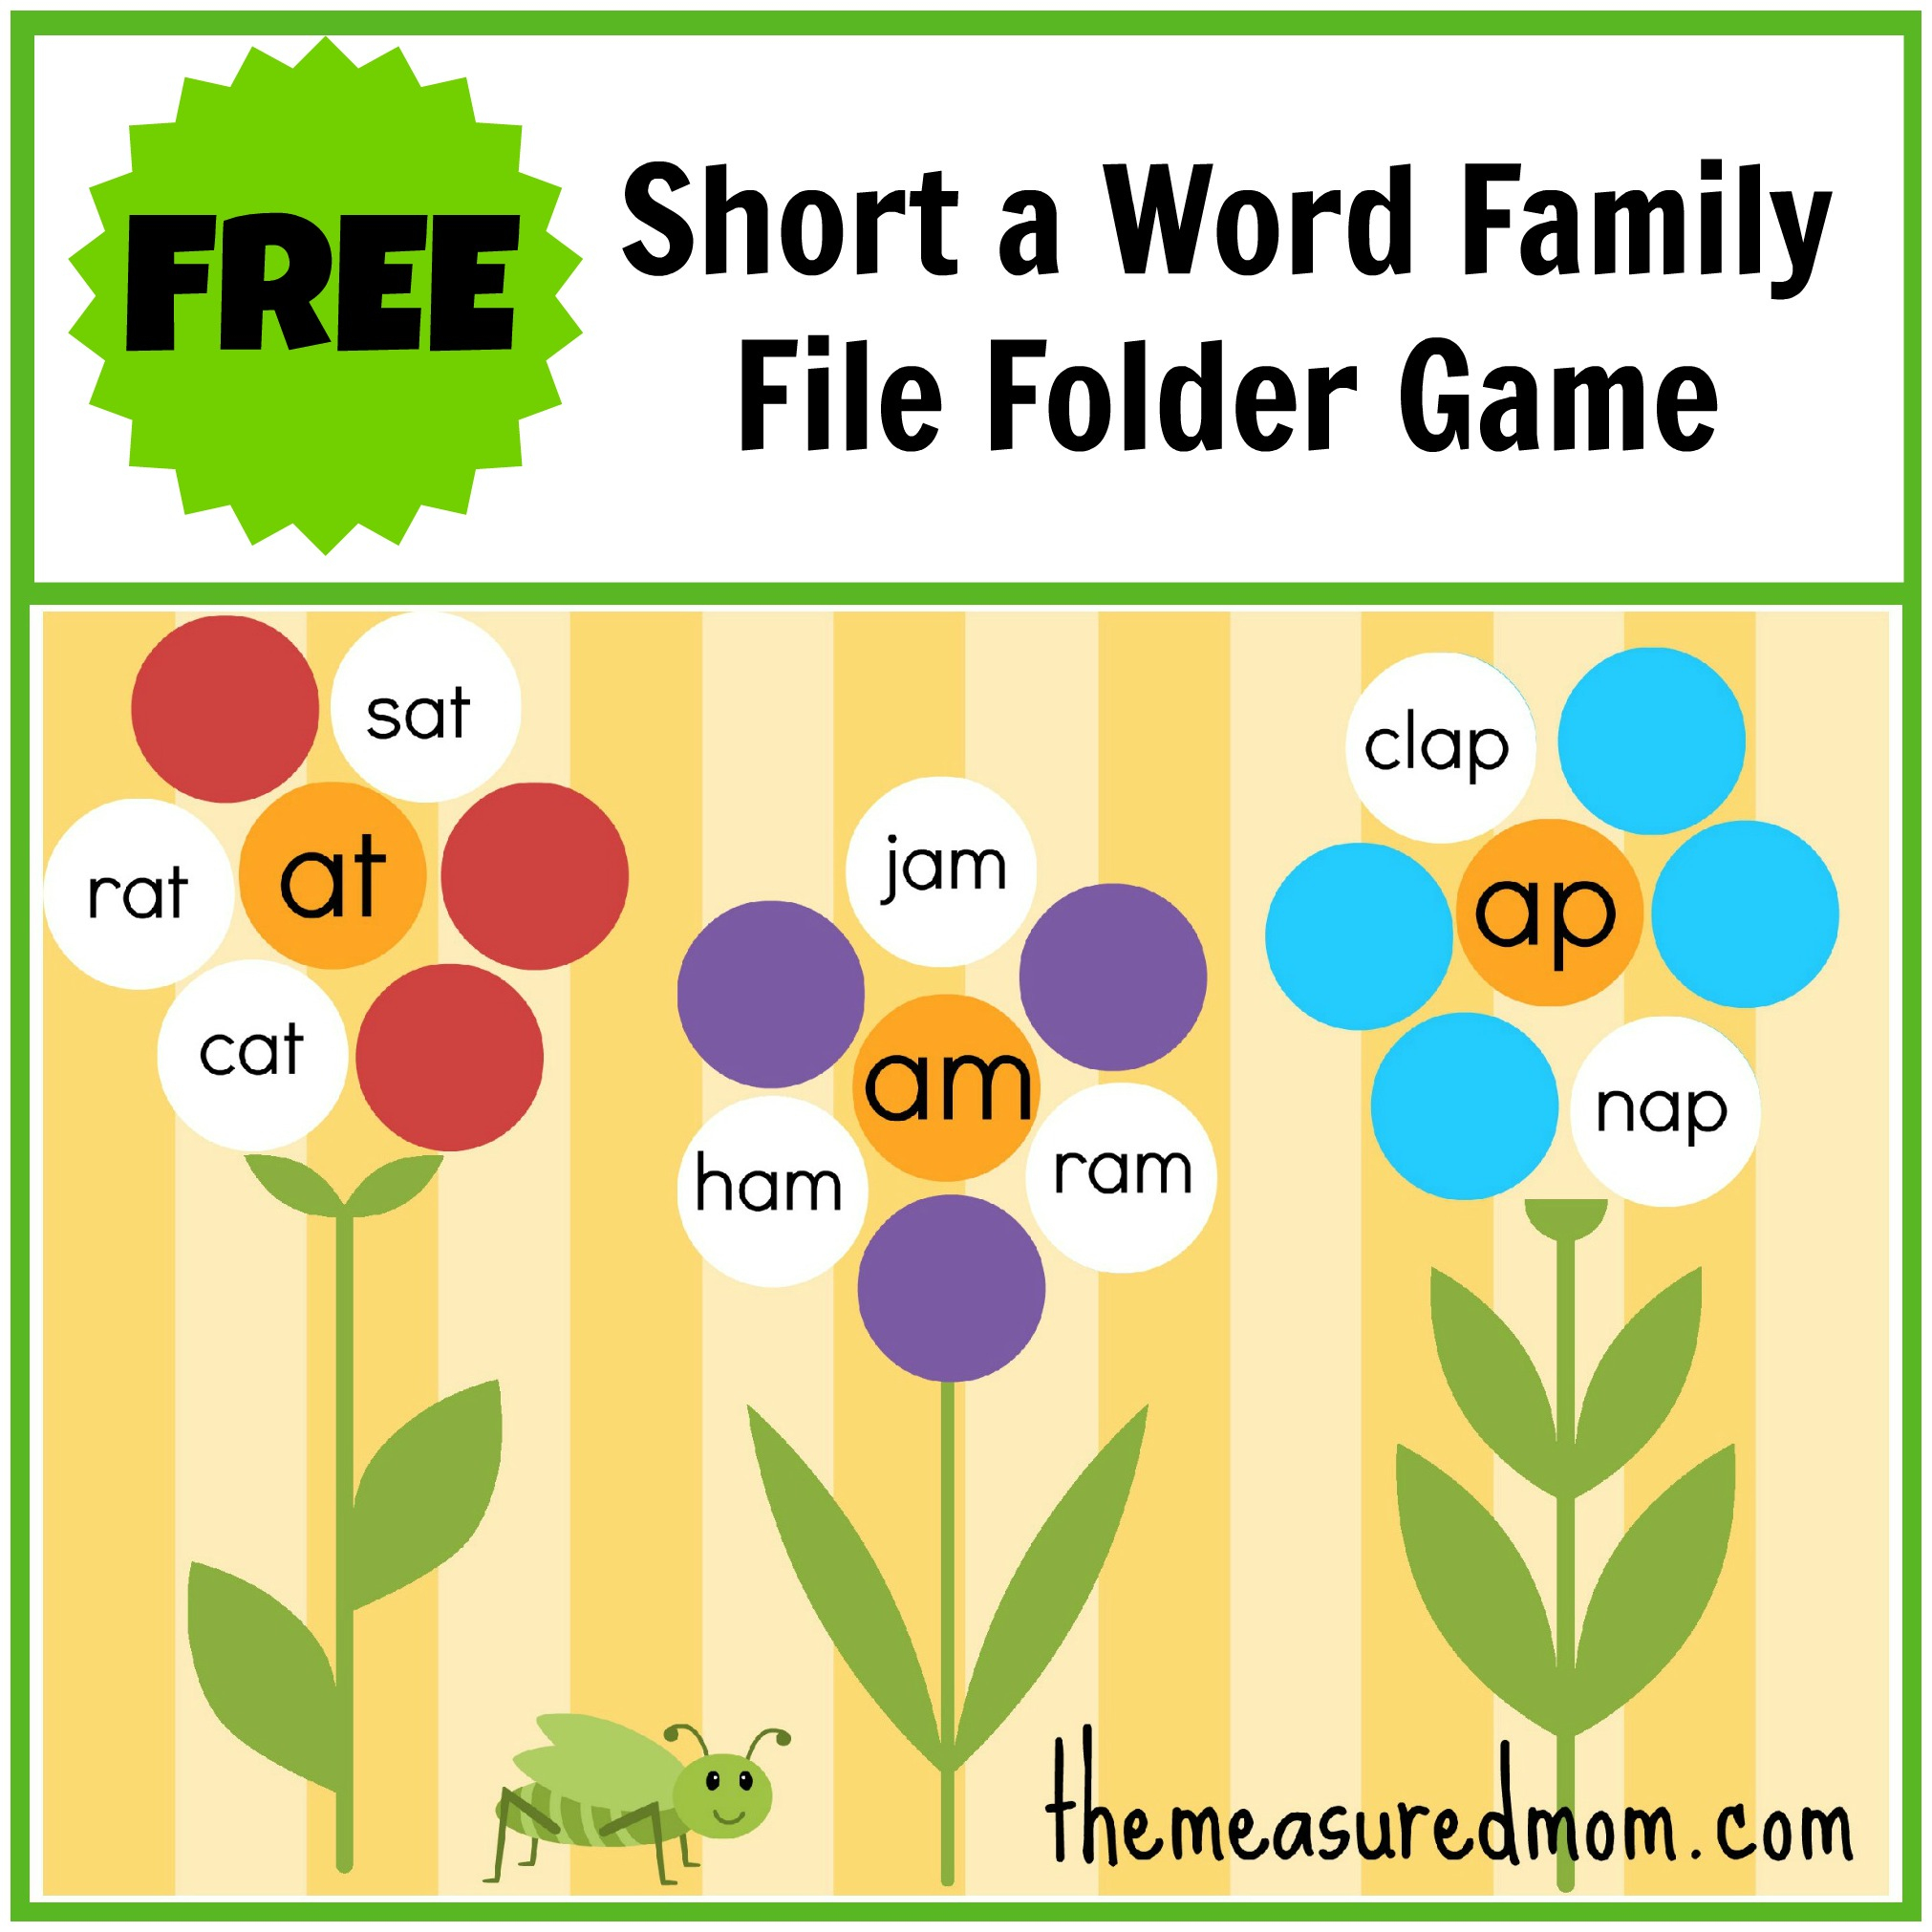 Free Word Family File Folder Game: Short A - The Measured Mom - Free Printable Fall File Folder Games